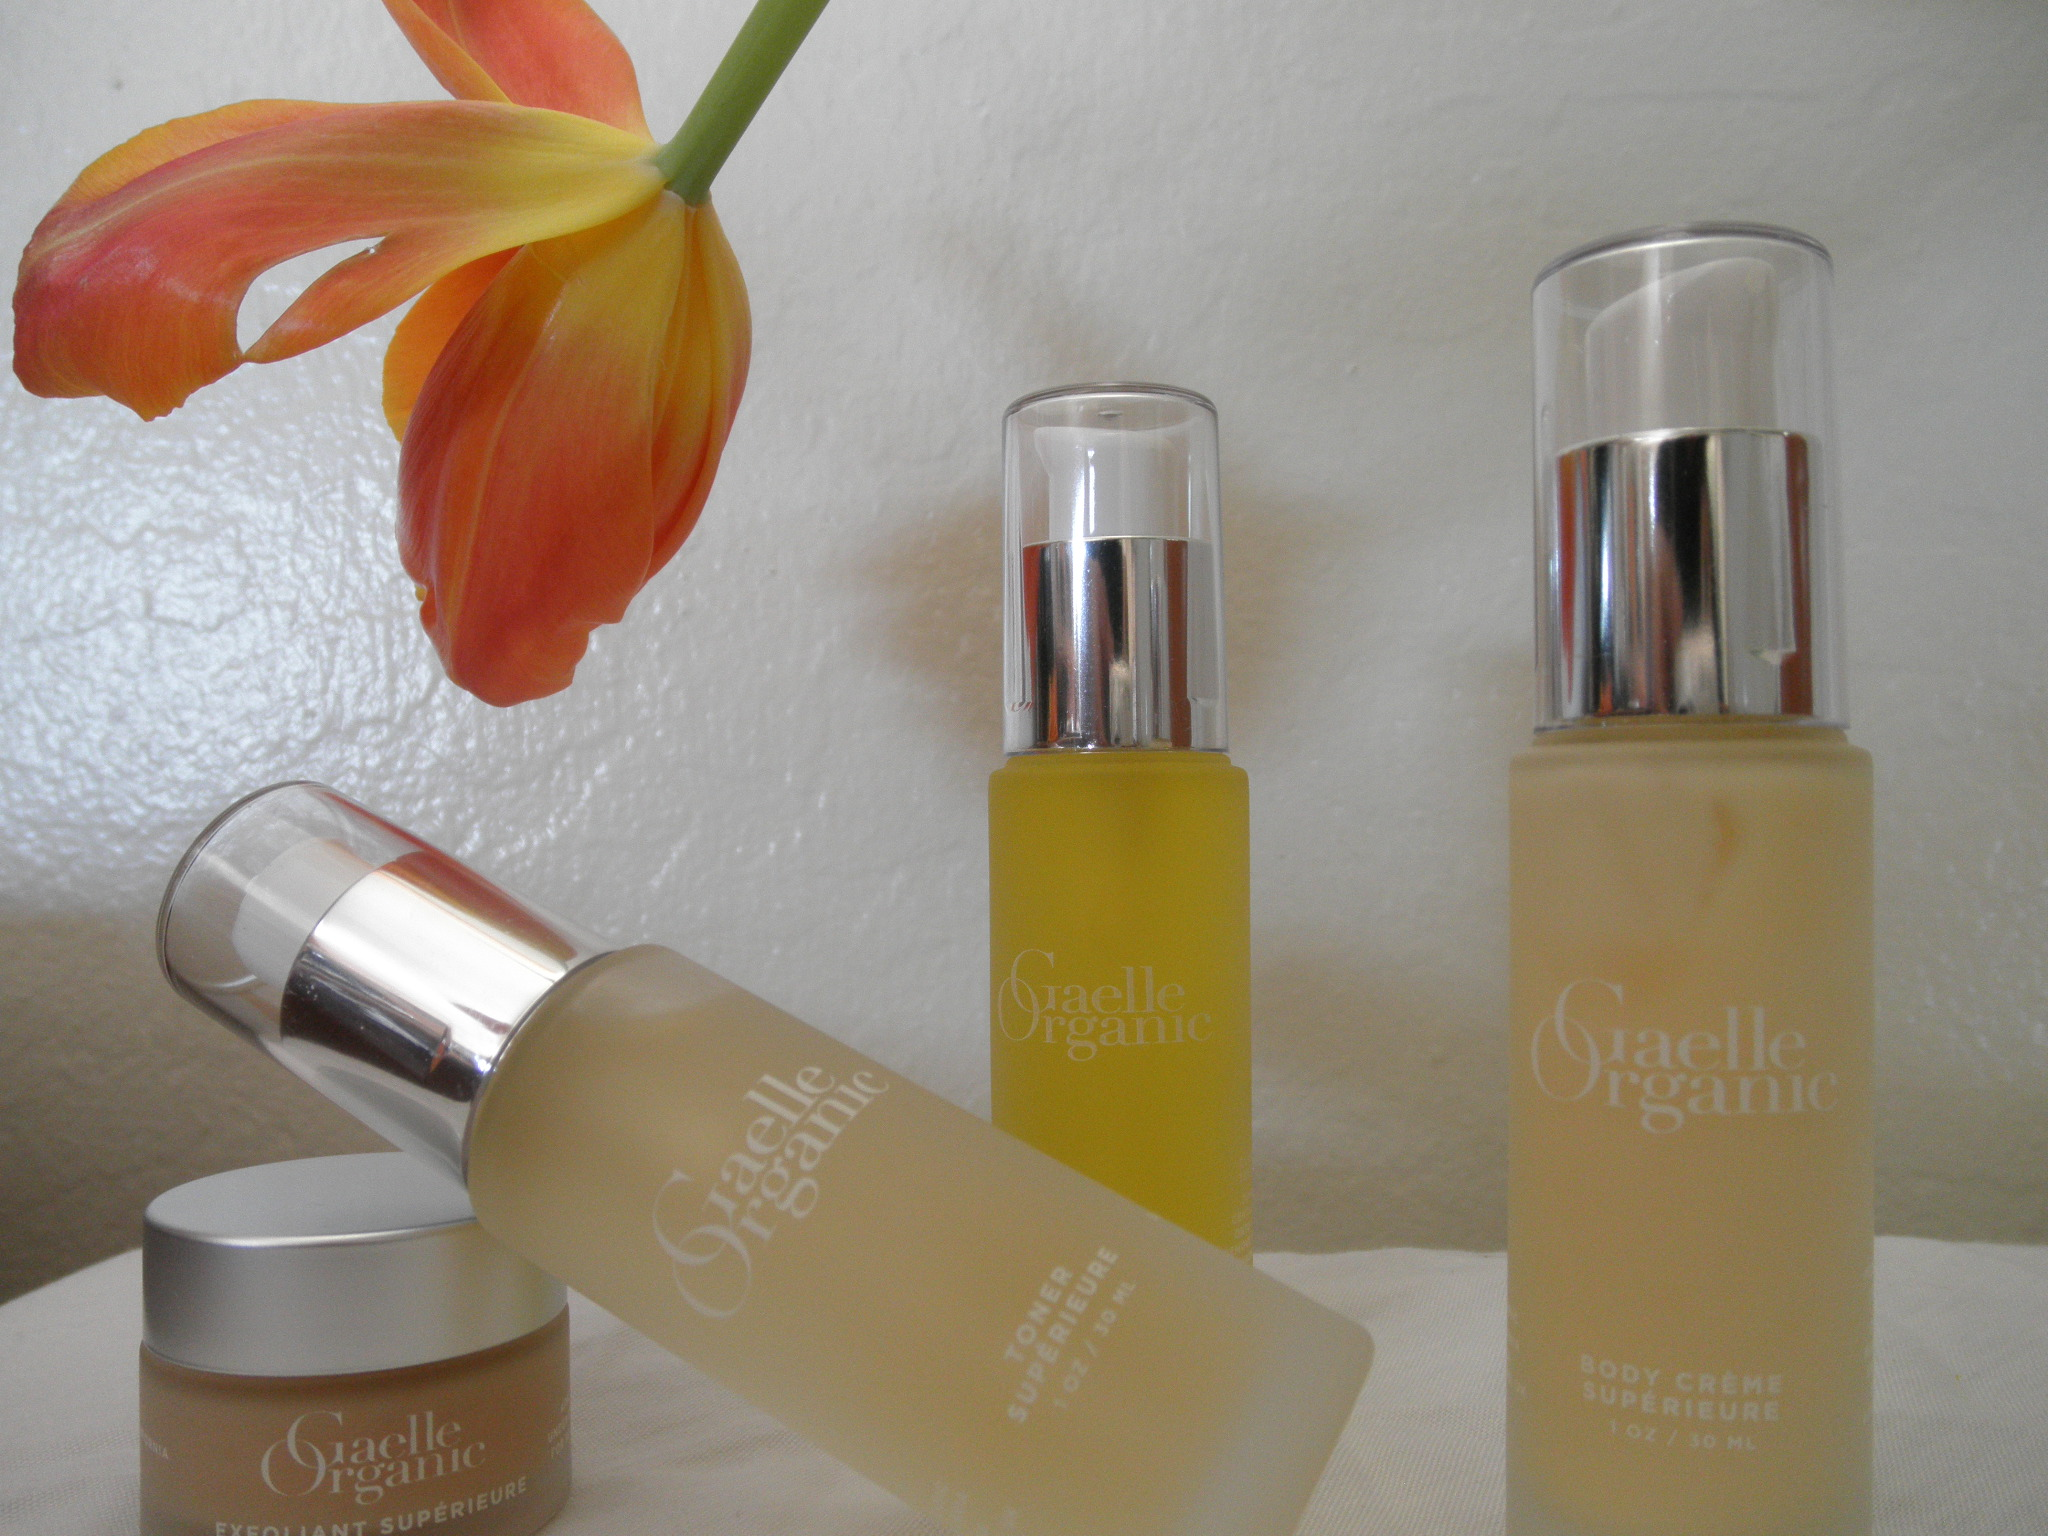 Read our review on Gaelle Organic skincare // DNAMAG